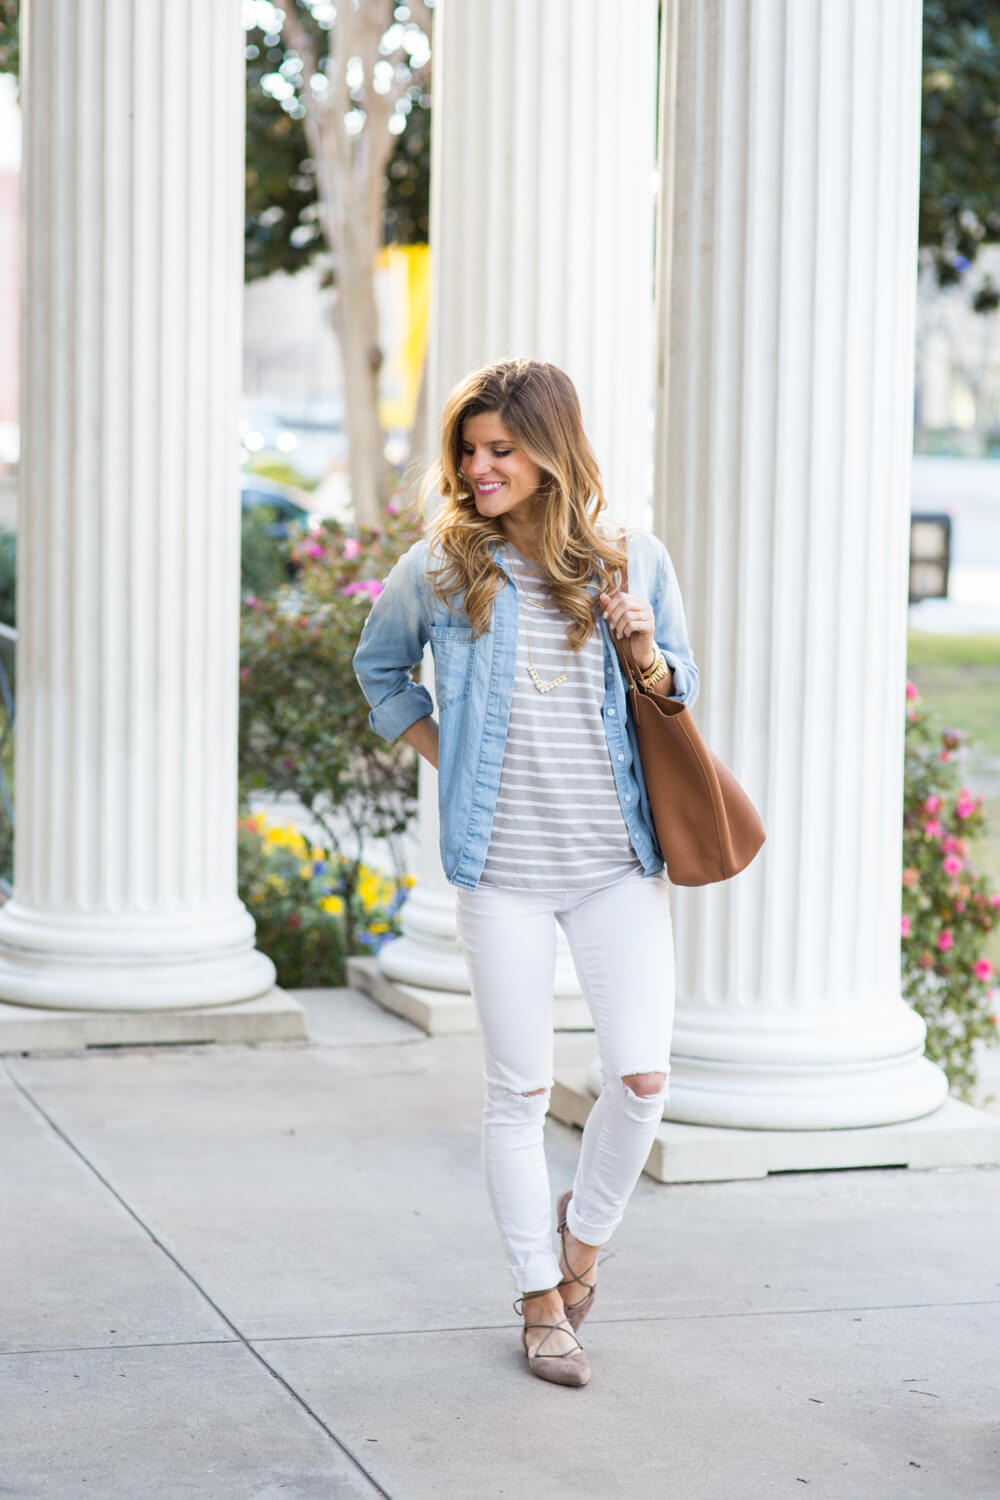 Brightontheday layering denim shirt with striped tee and white jeans